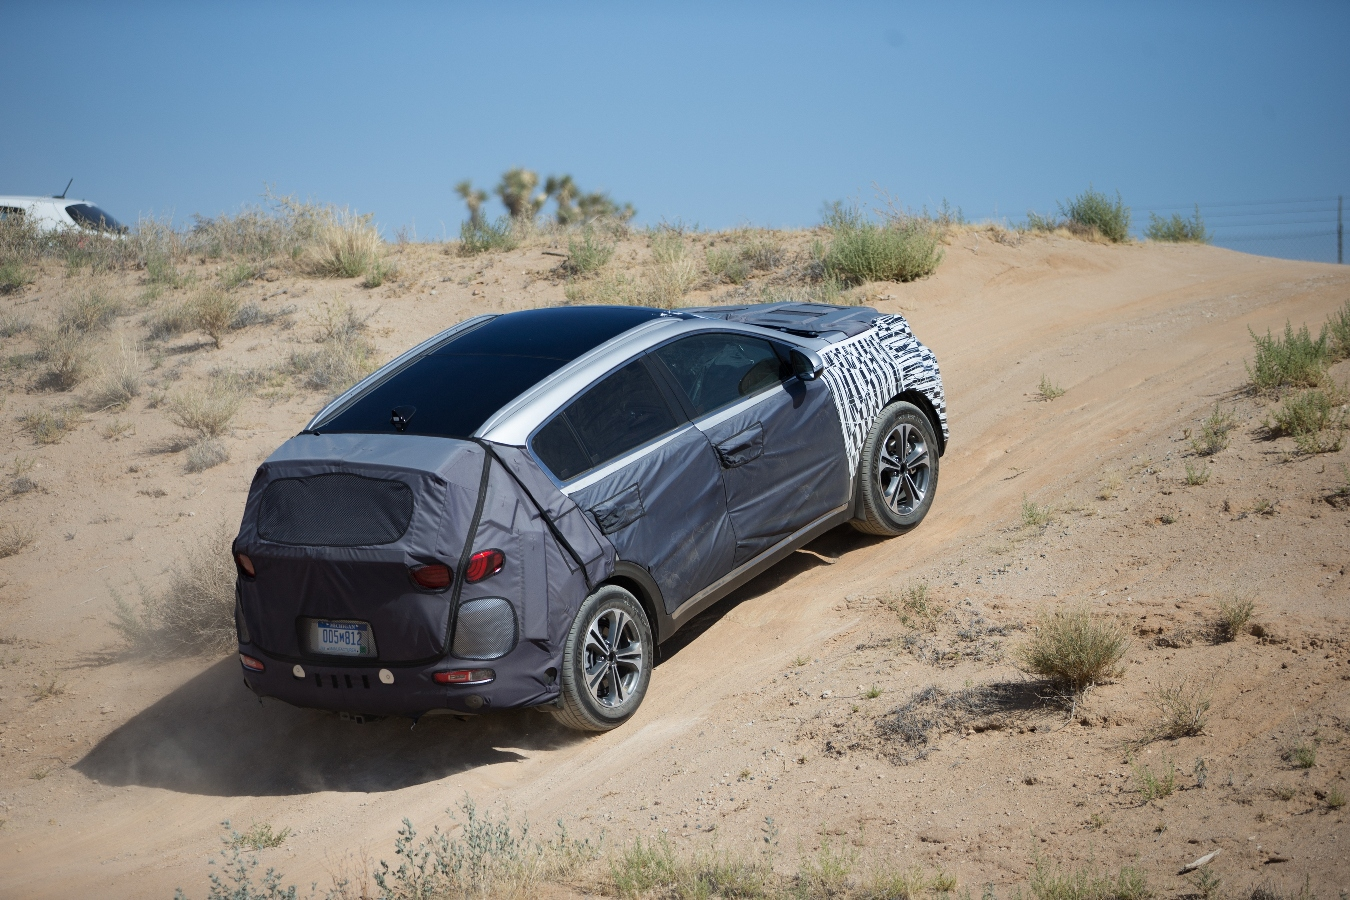 Kia Sportage in Mojave desert proving grounds